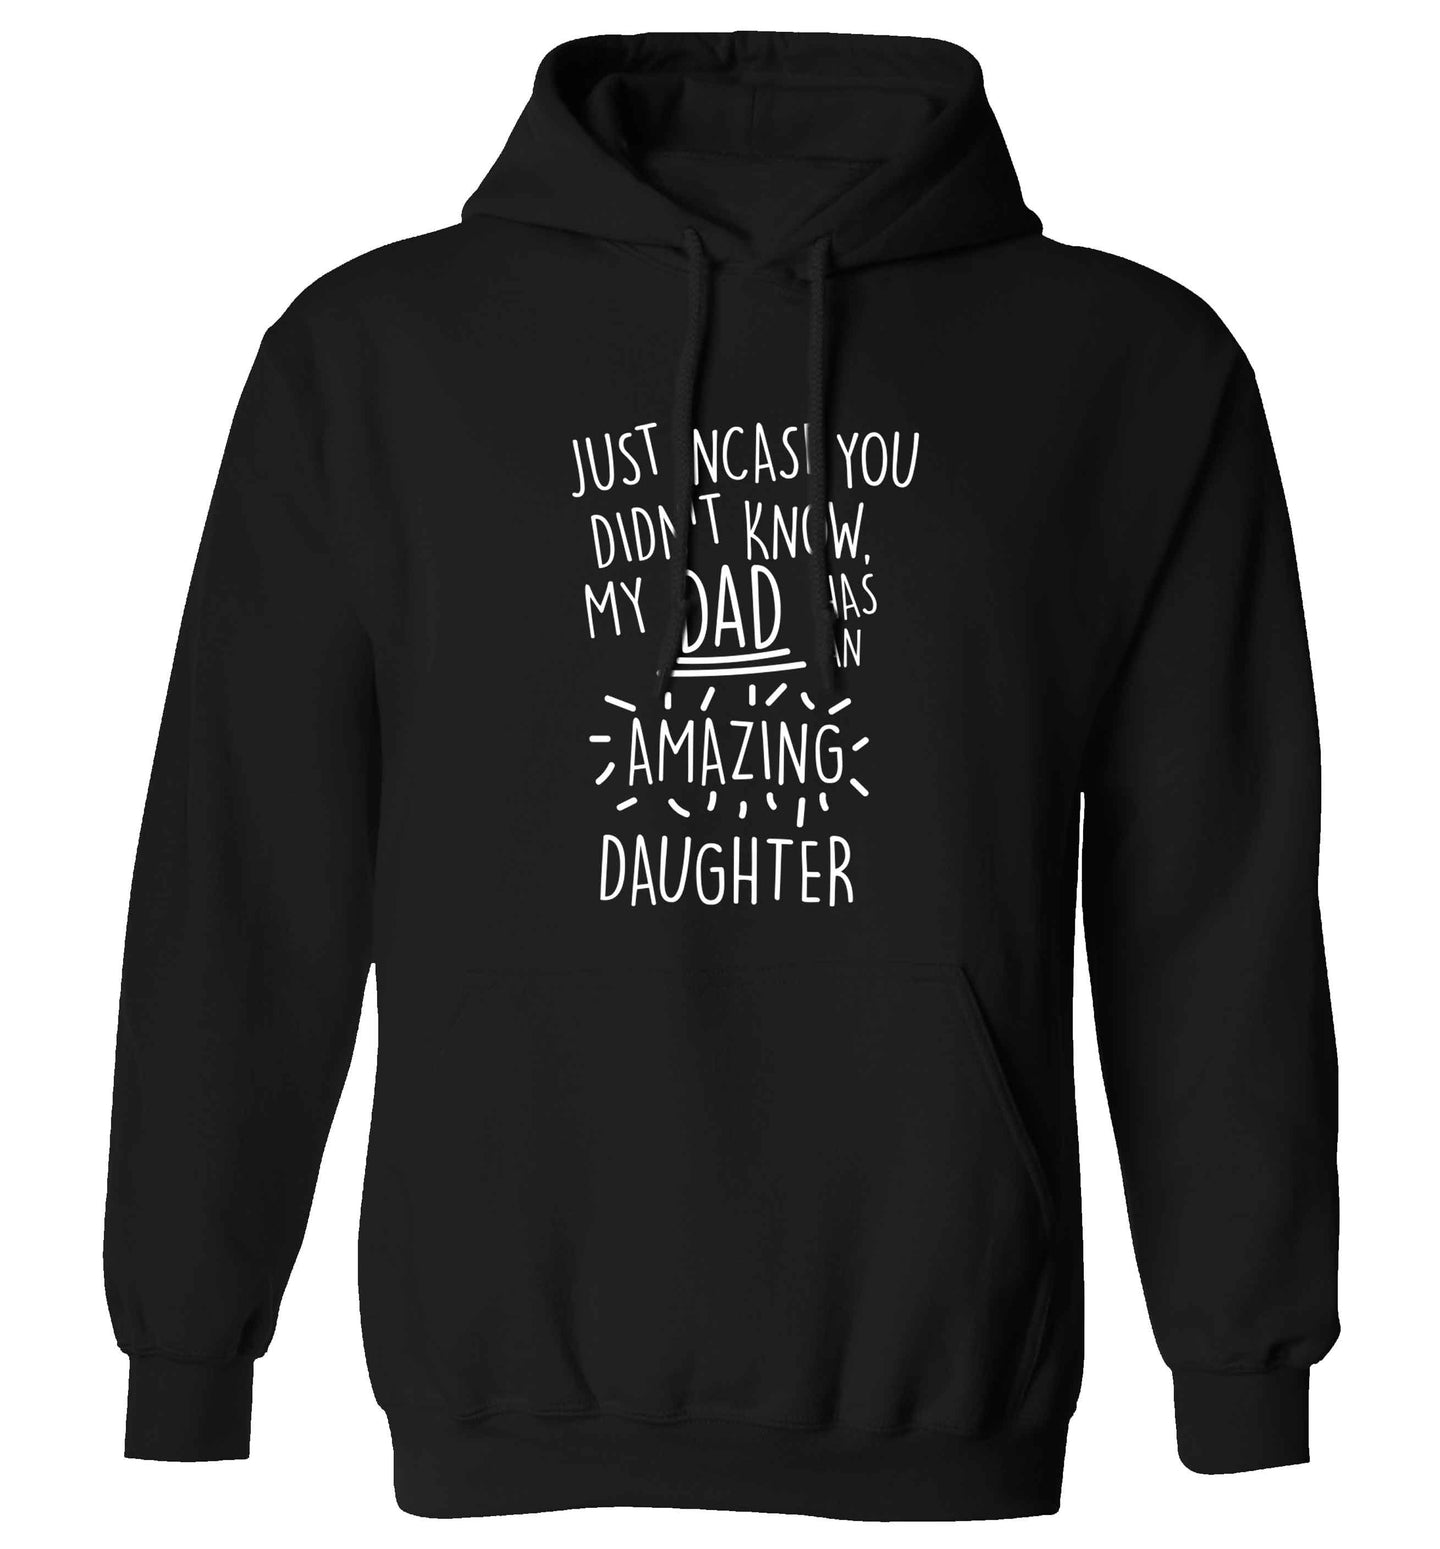 Just incase you didn't know my dad has an amazing daughter adults unisex black hoodie 2XL